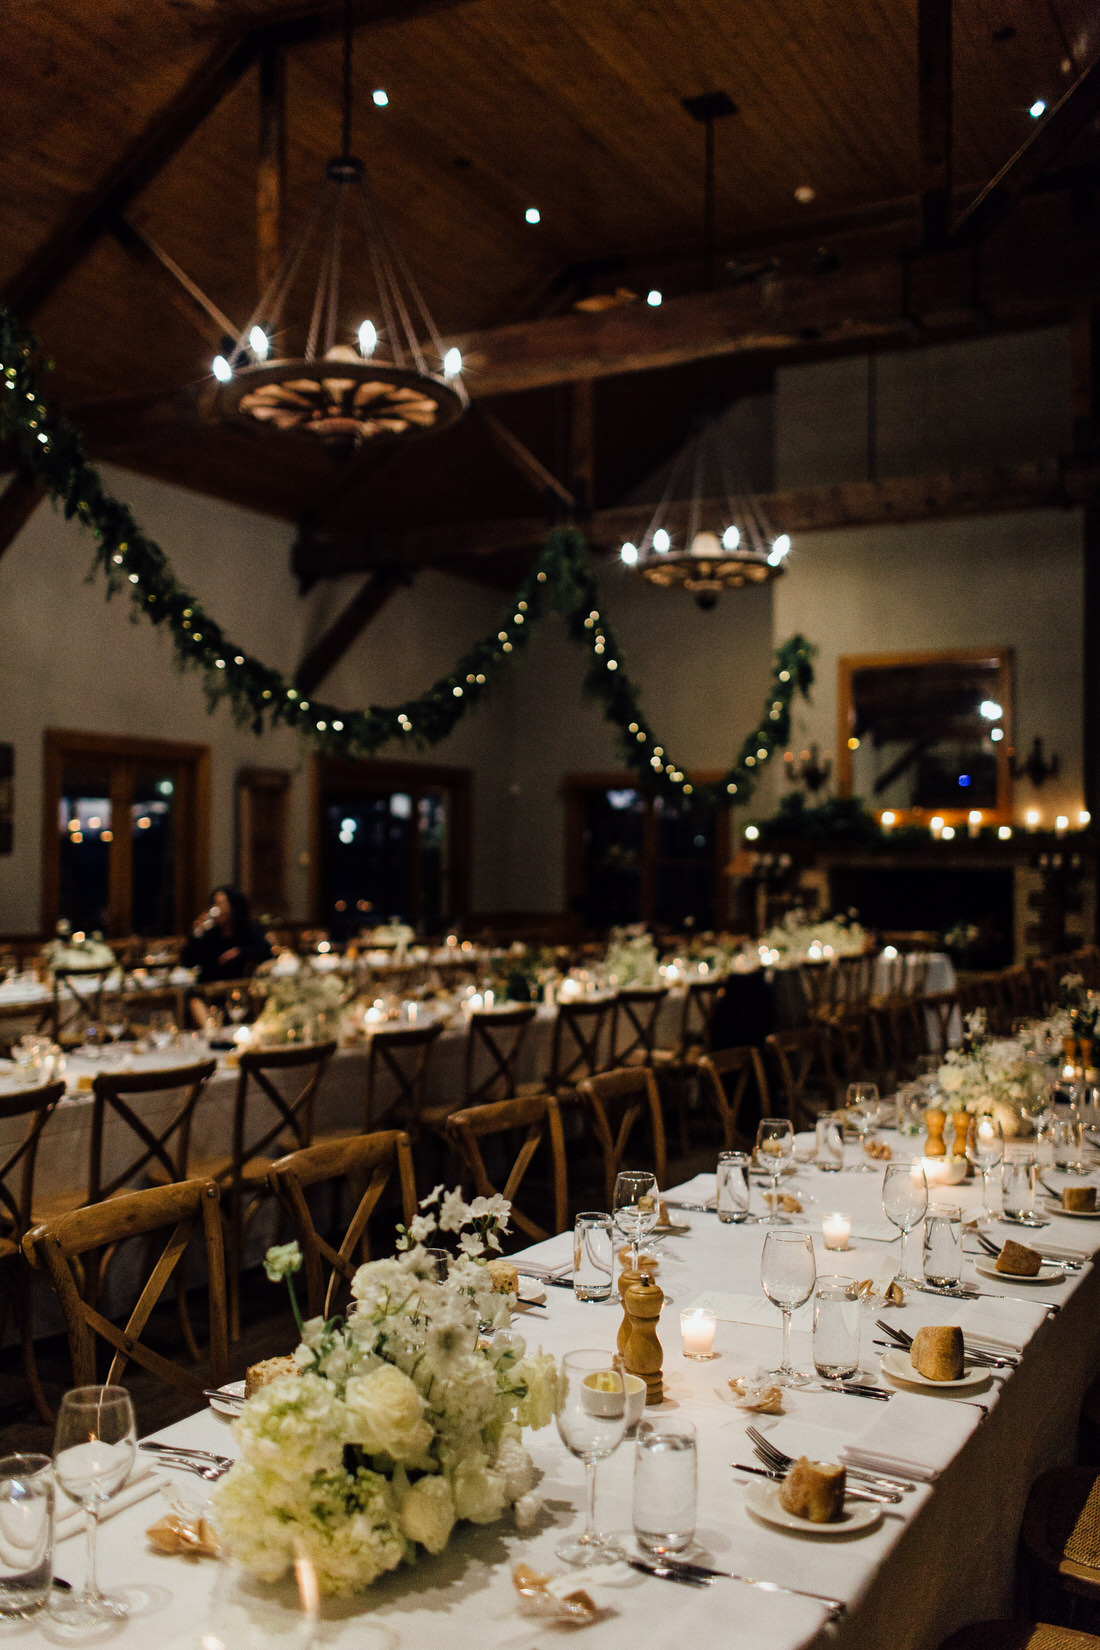 Centennial Vineyards wedding and reception styling